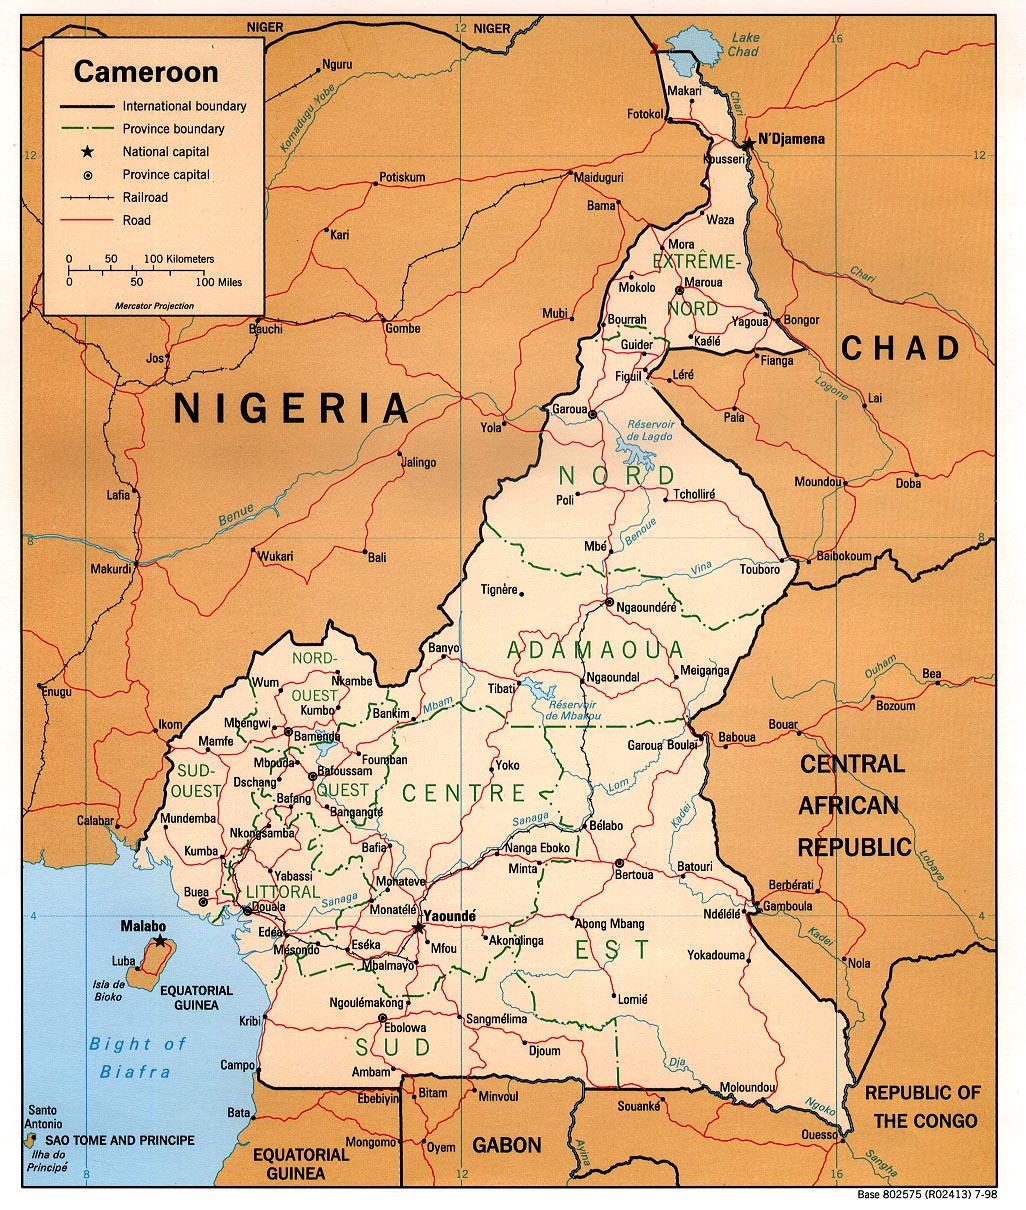 Cameroon Maps - Perry-Castañeda Map Collection - UT Library Online CAMEROON